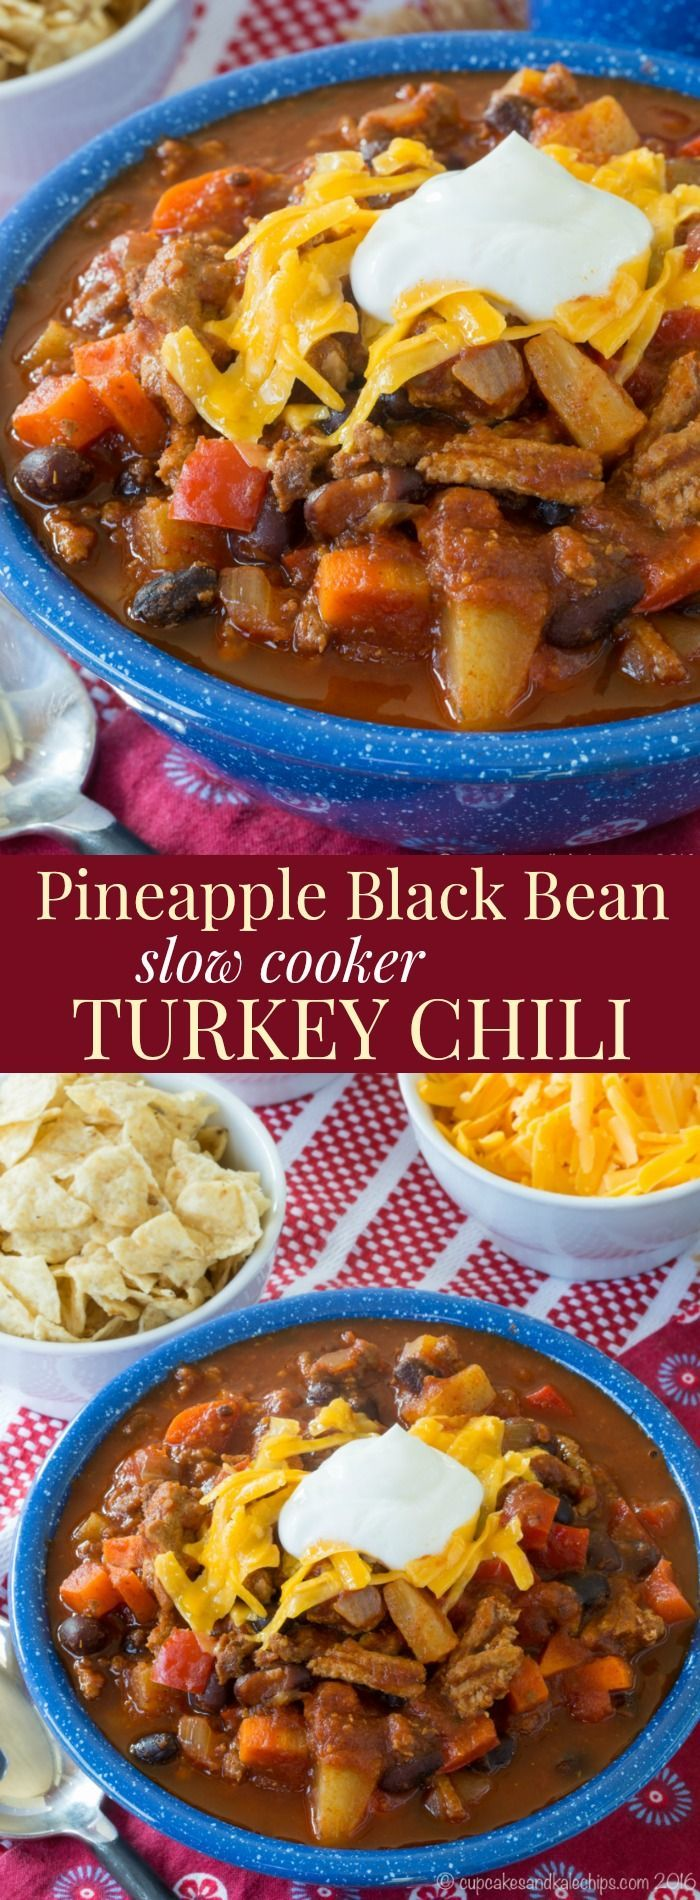 Pineapple Black Bean Slow Cooker Turkey Chili - a healthy